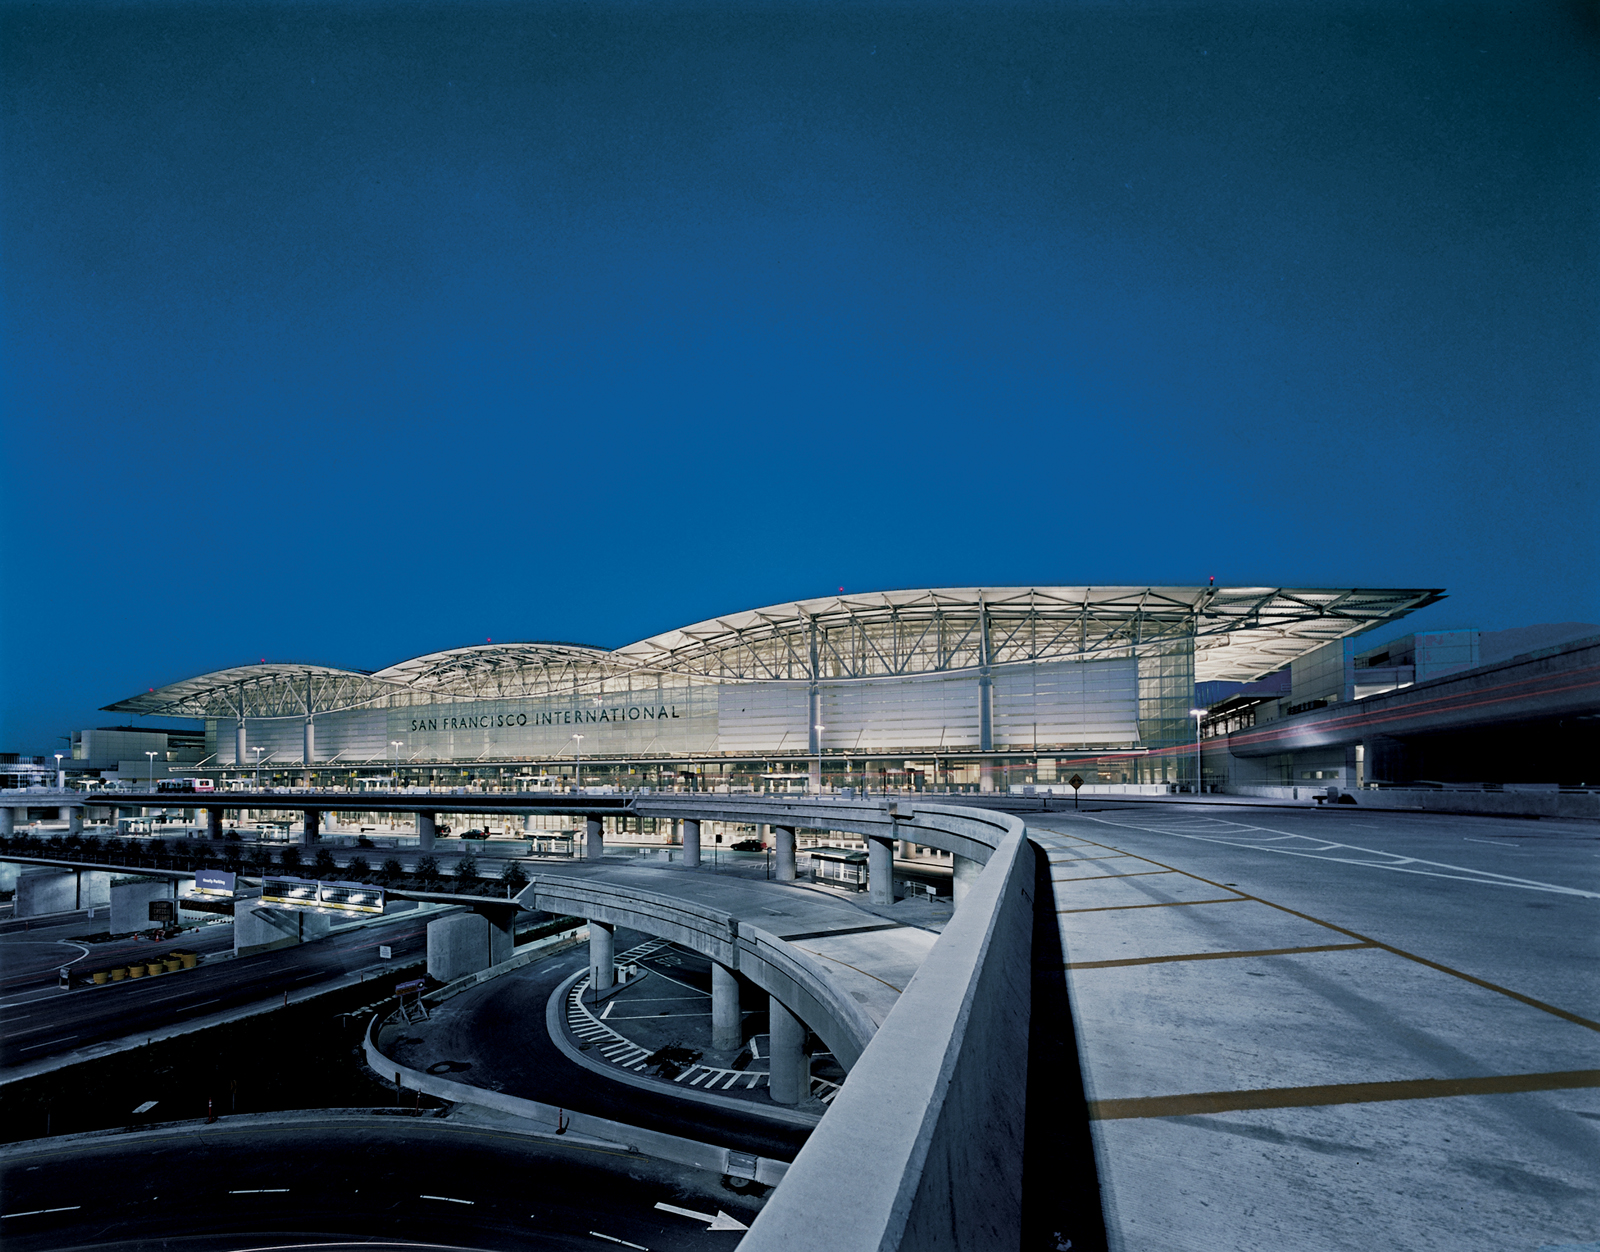 San Francisco International, exterior